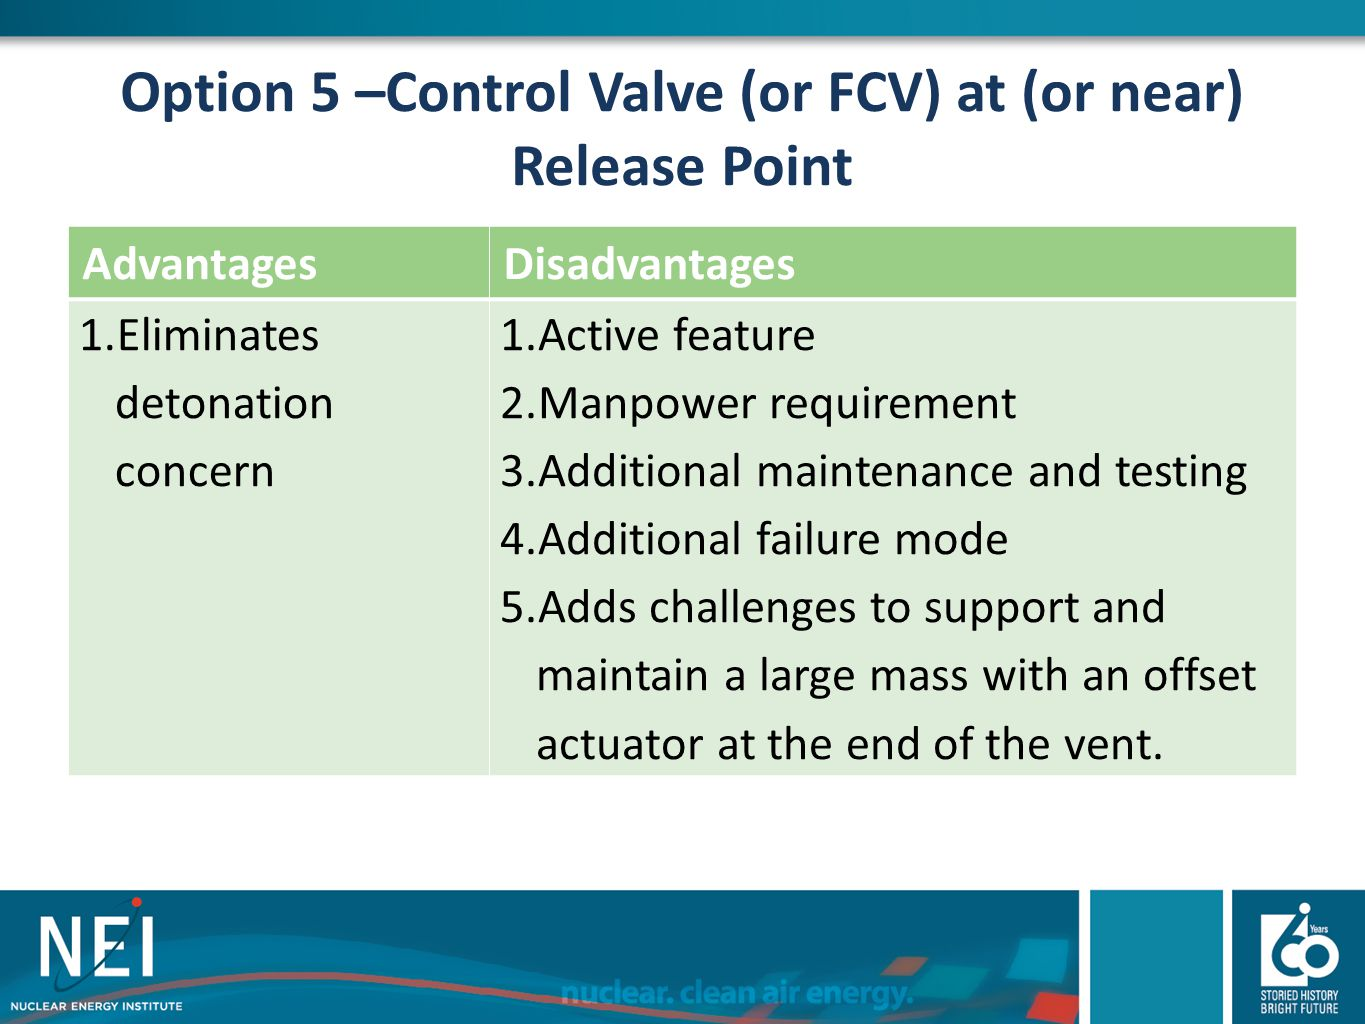 Option 5 –Control Valve (or FCV) at (or near) Release Point